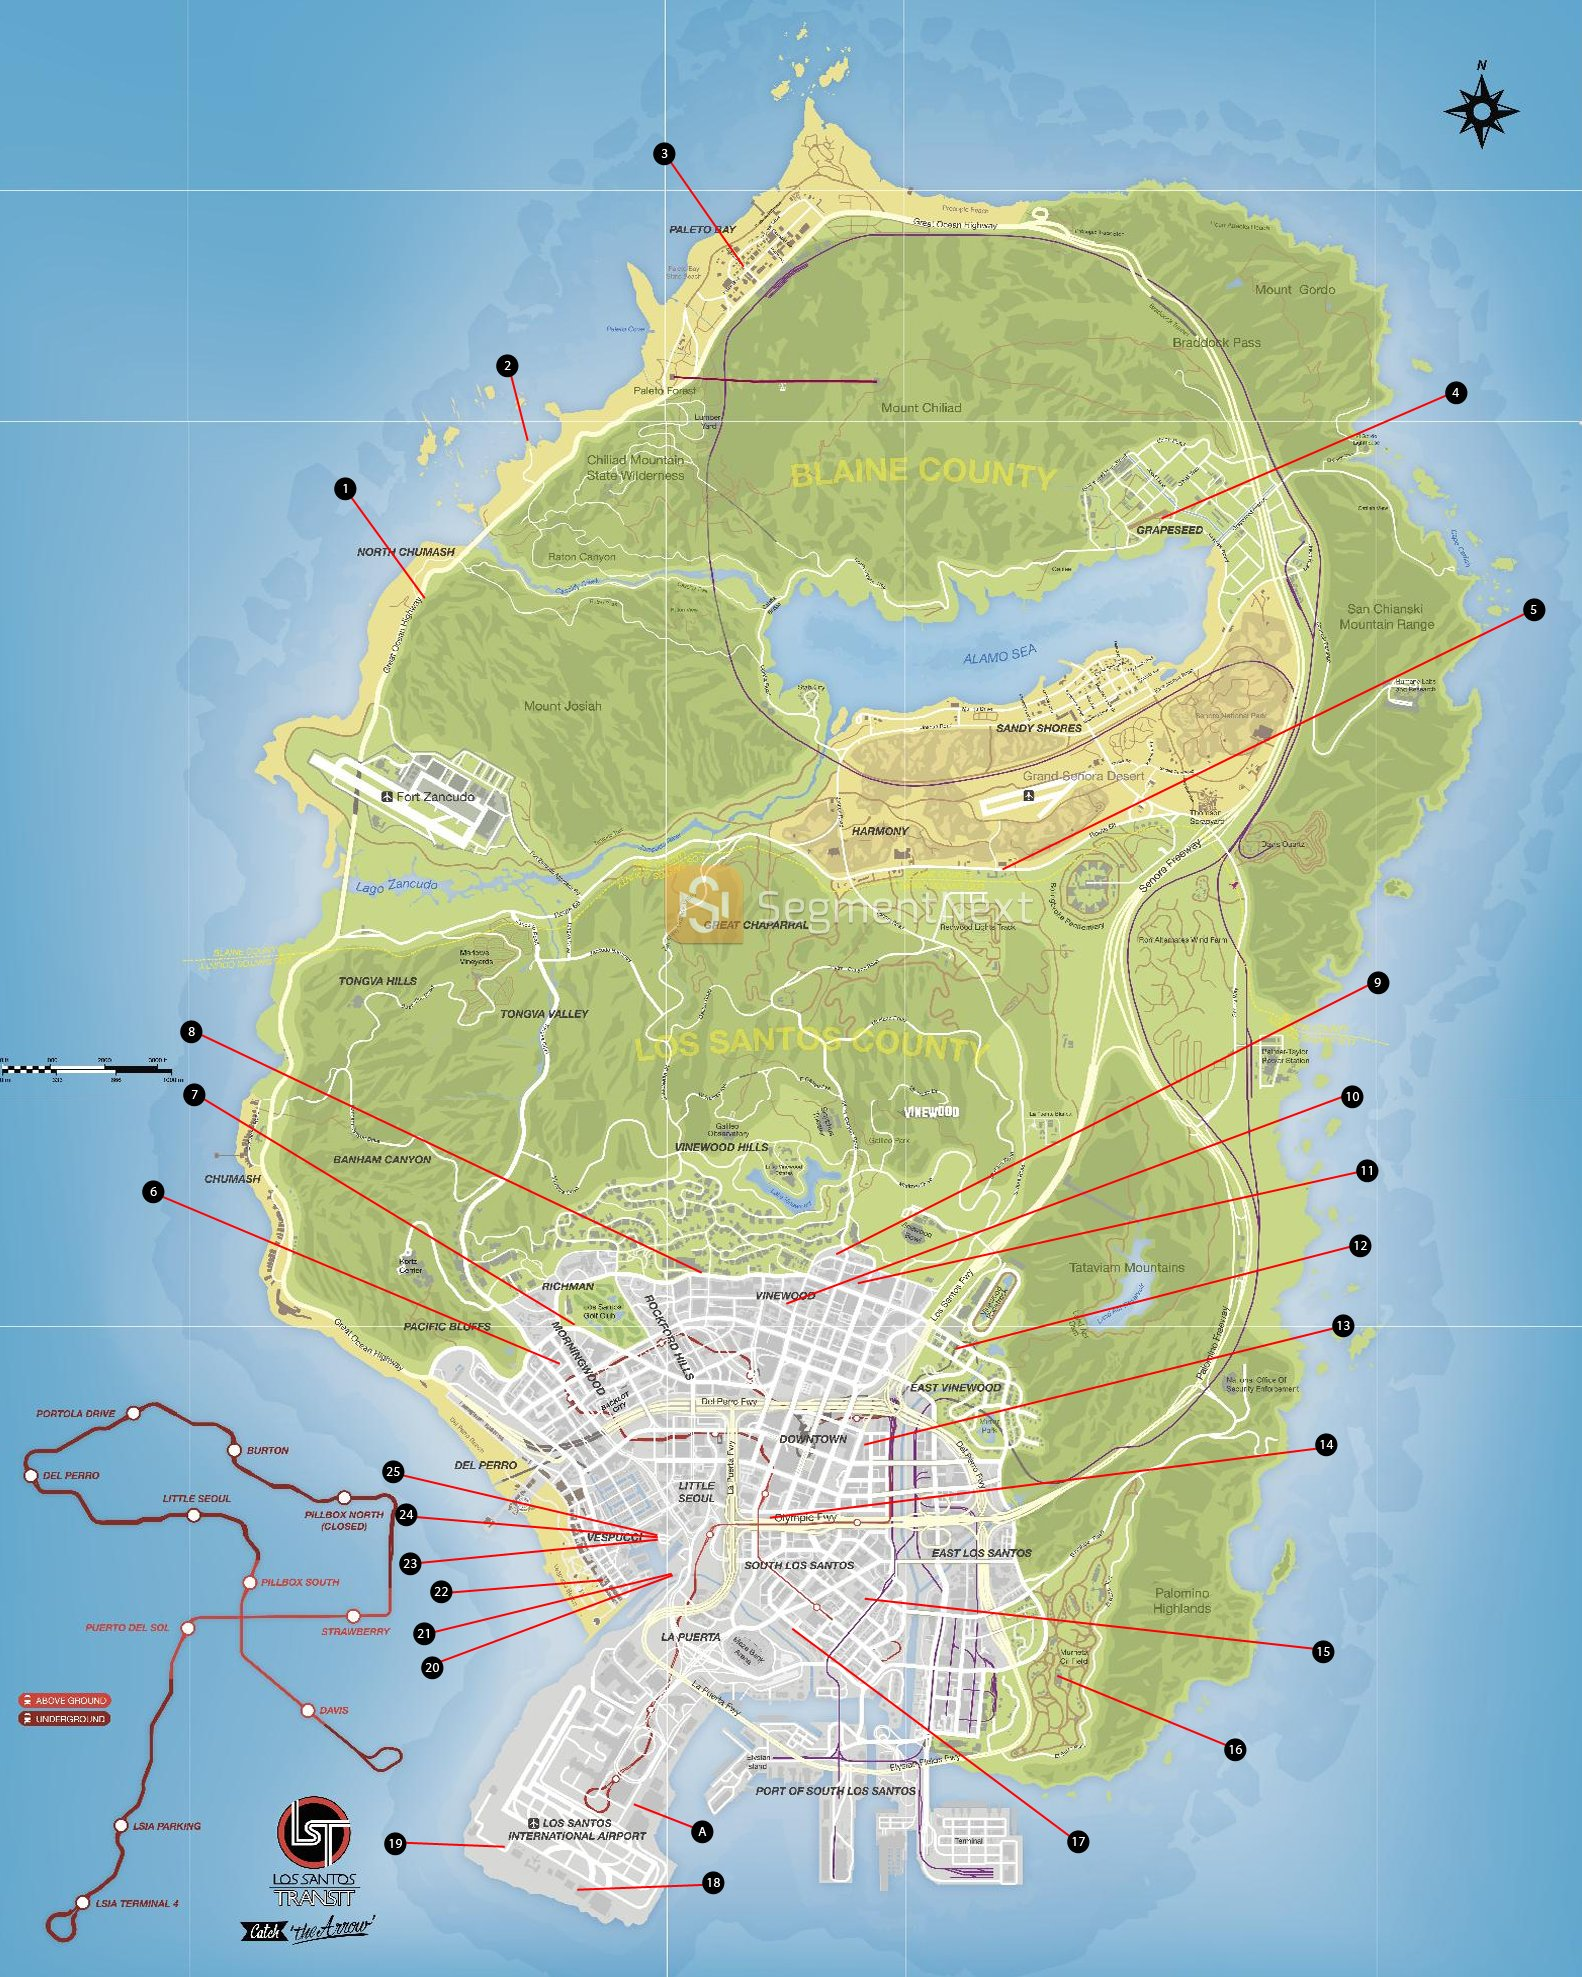 Gta V Properties Locations Map Click To Open Map